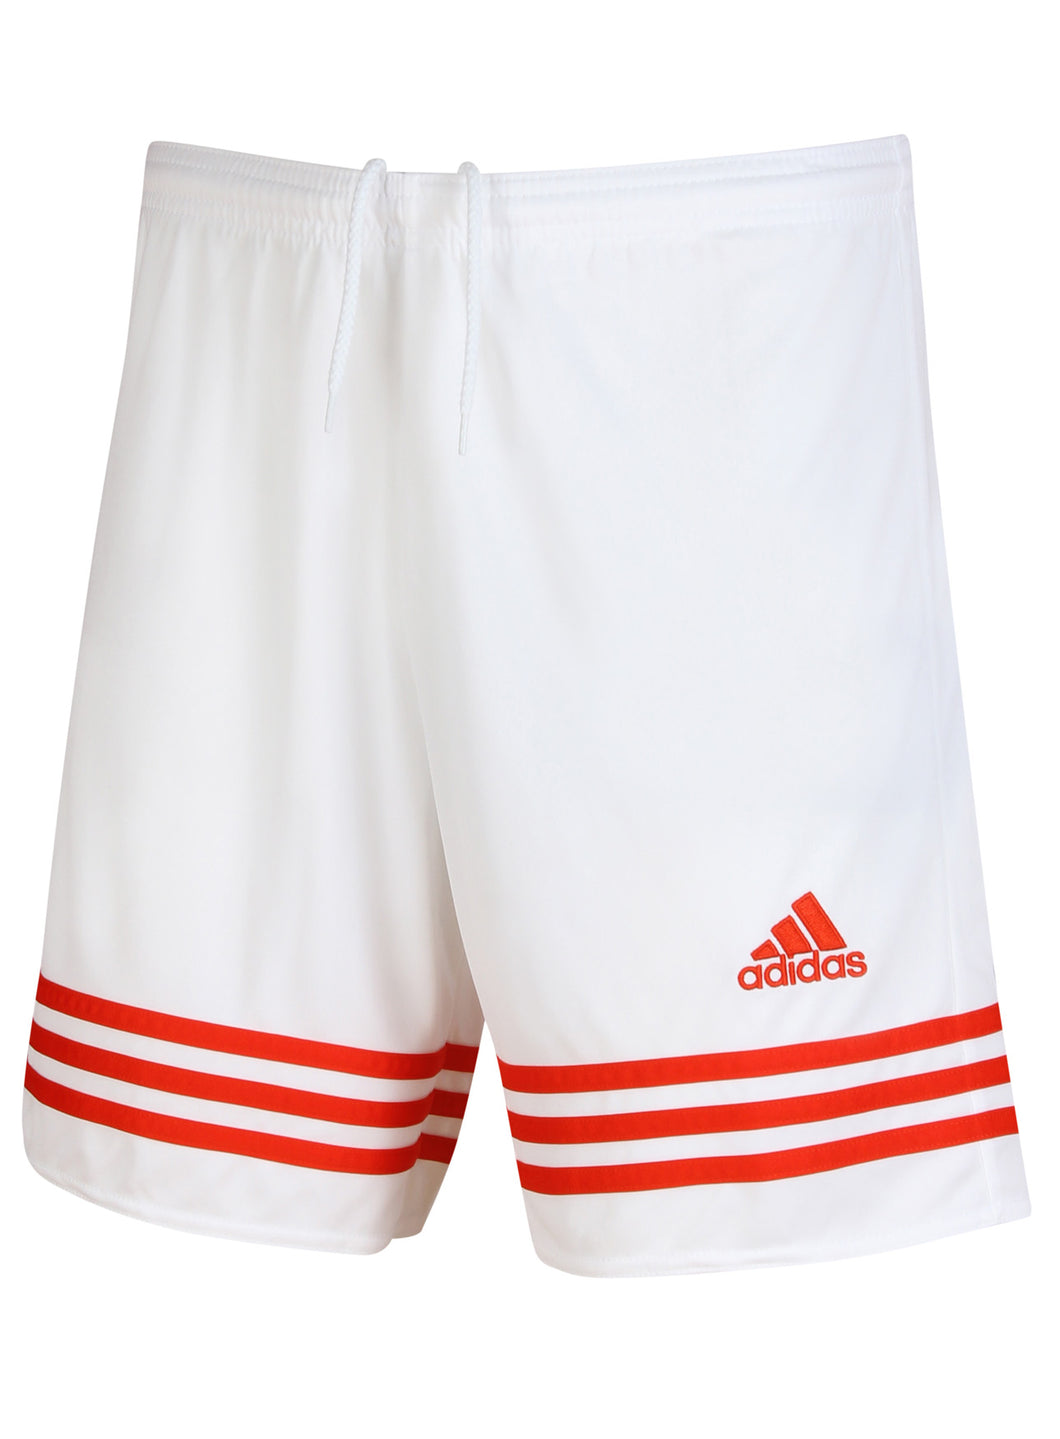 adidas Men's Entrada White 7 Inch climalite Polyester Training Shorts